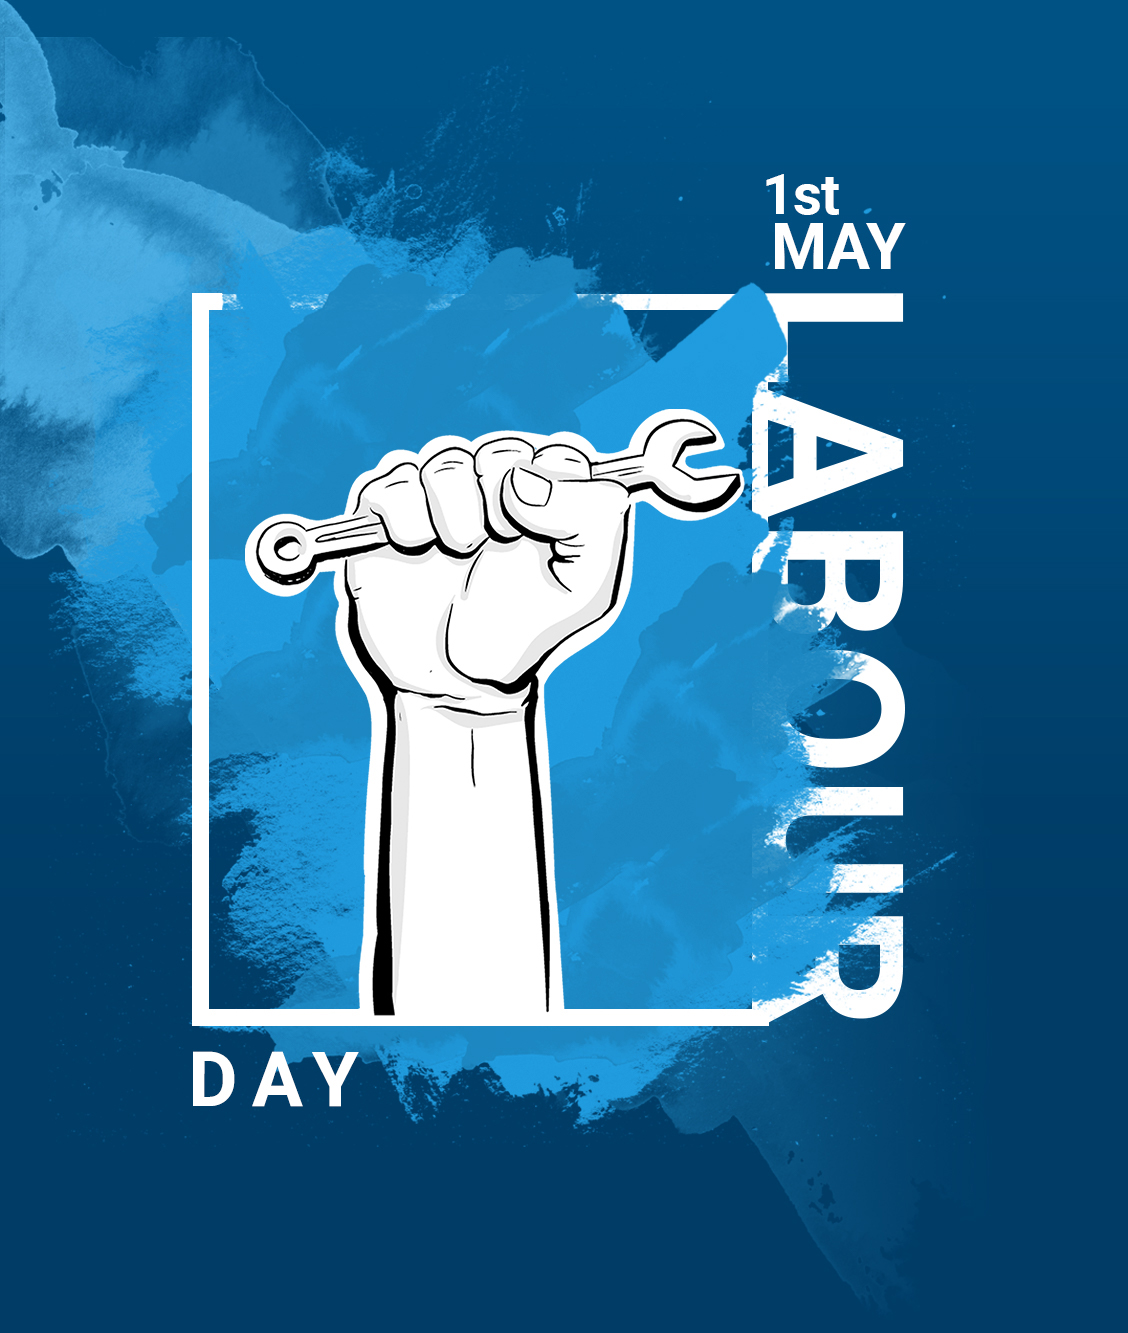 TeamViewer celebrates labour day